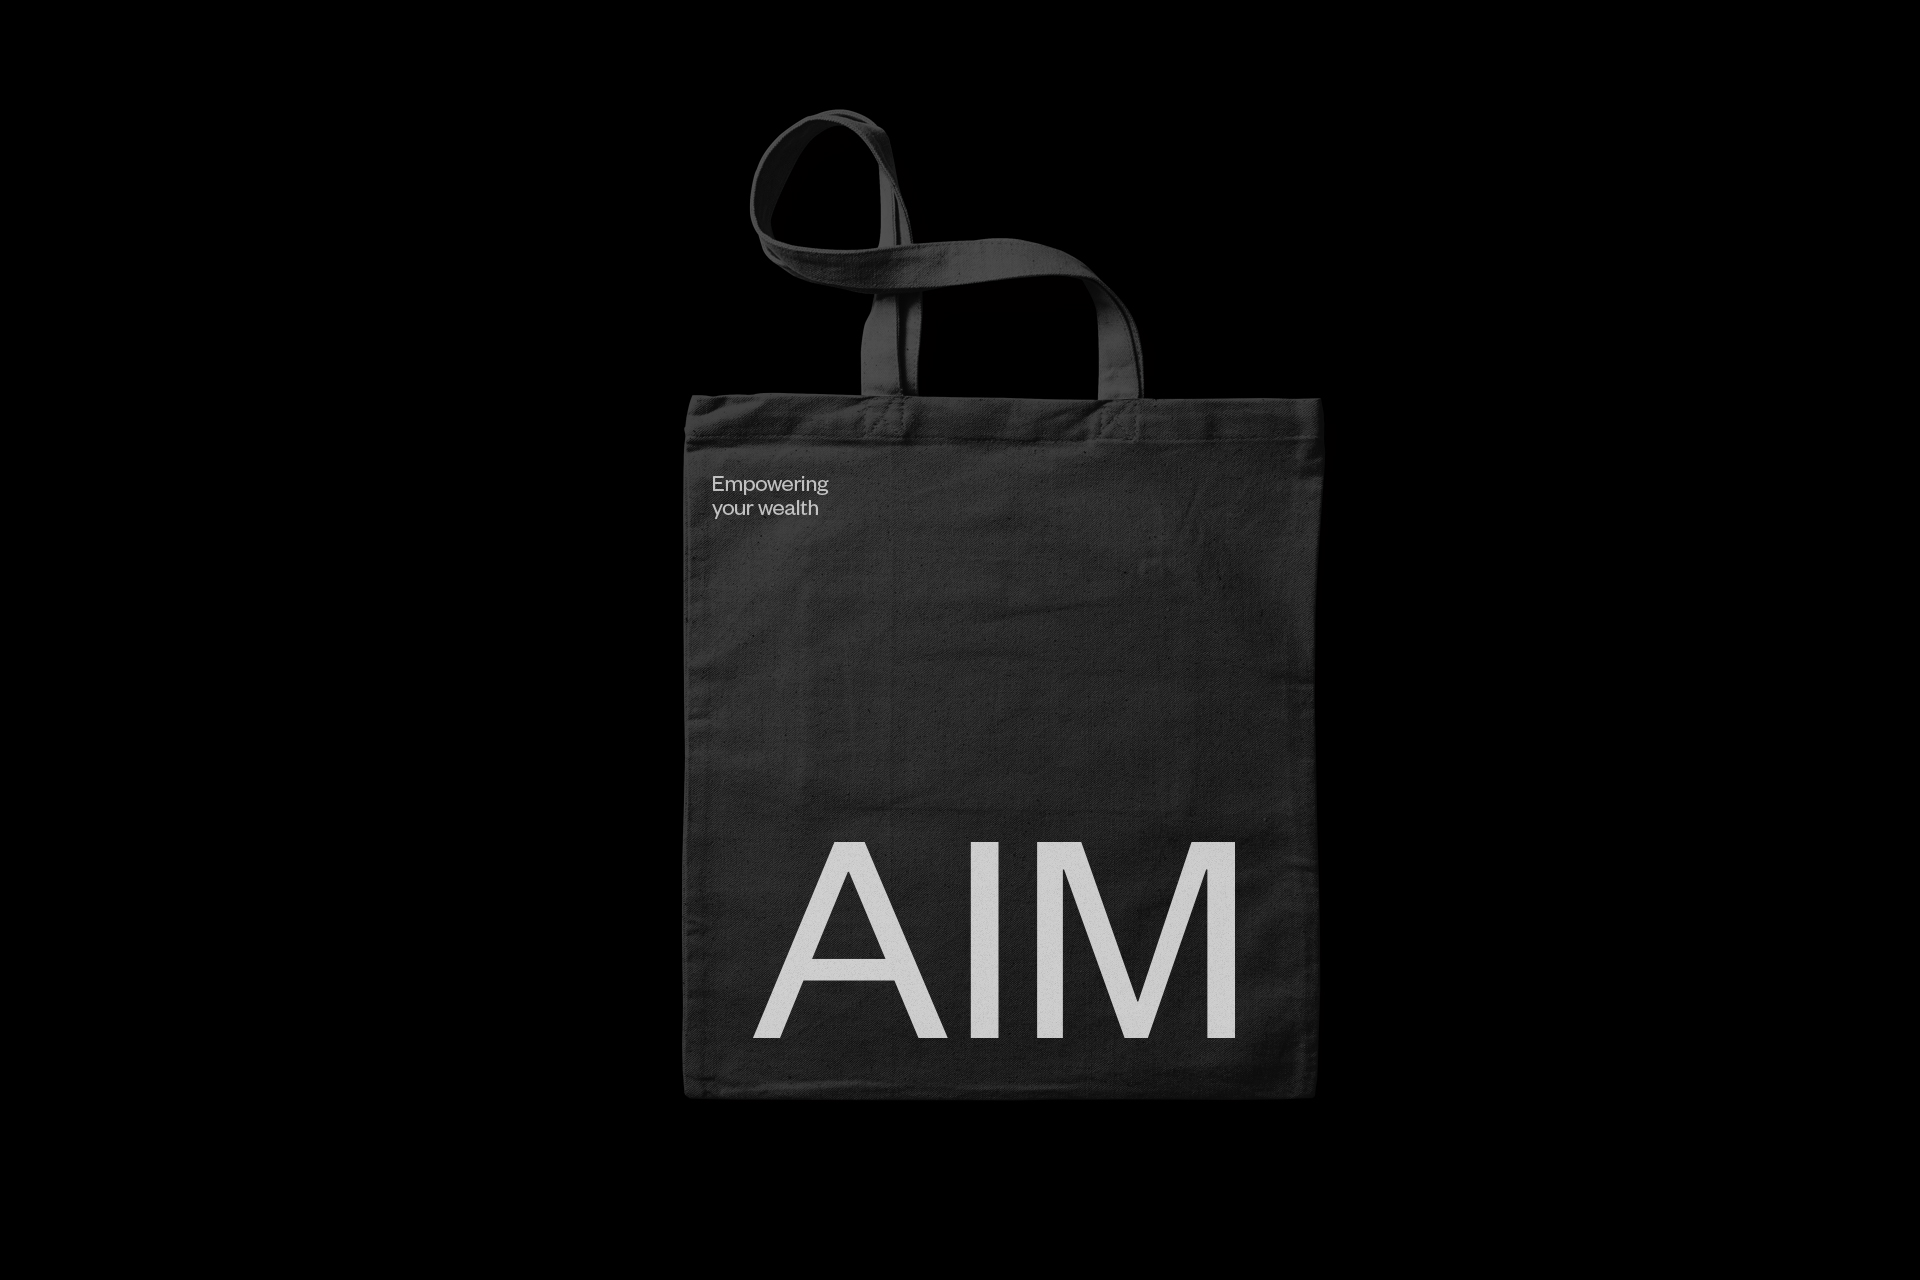 Nectar_2020_AIM_Tote-Bag_v1